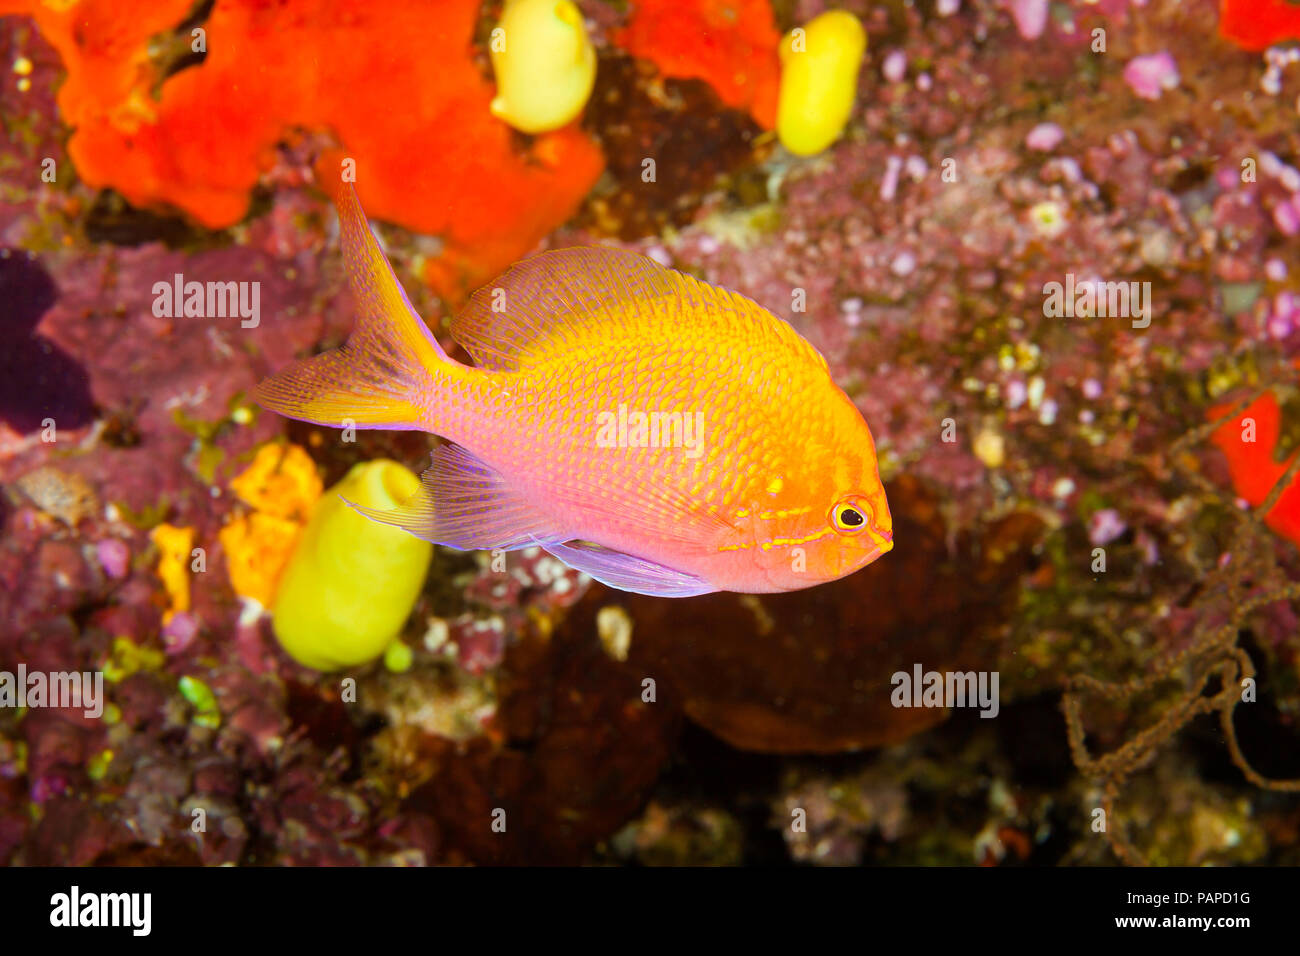 The hawkfish anthias, Serranocirrhitus latus, is a more solitary member of this family and can often be found swimming upside down in caves, Fiji.  Ot - Stock Image